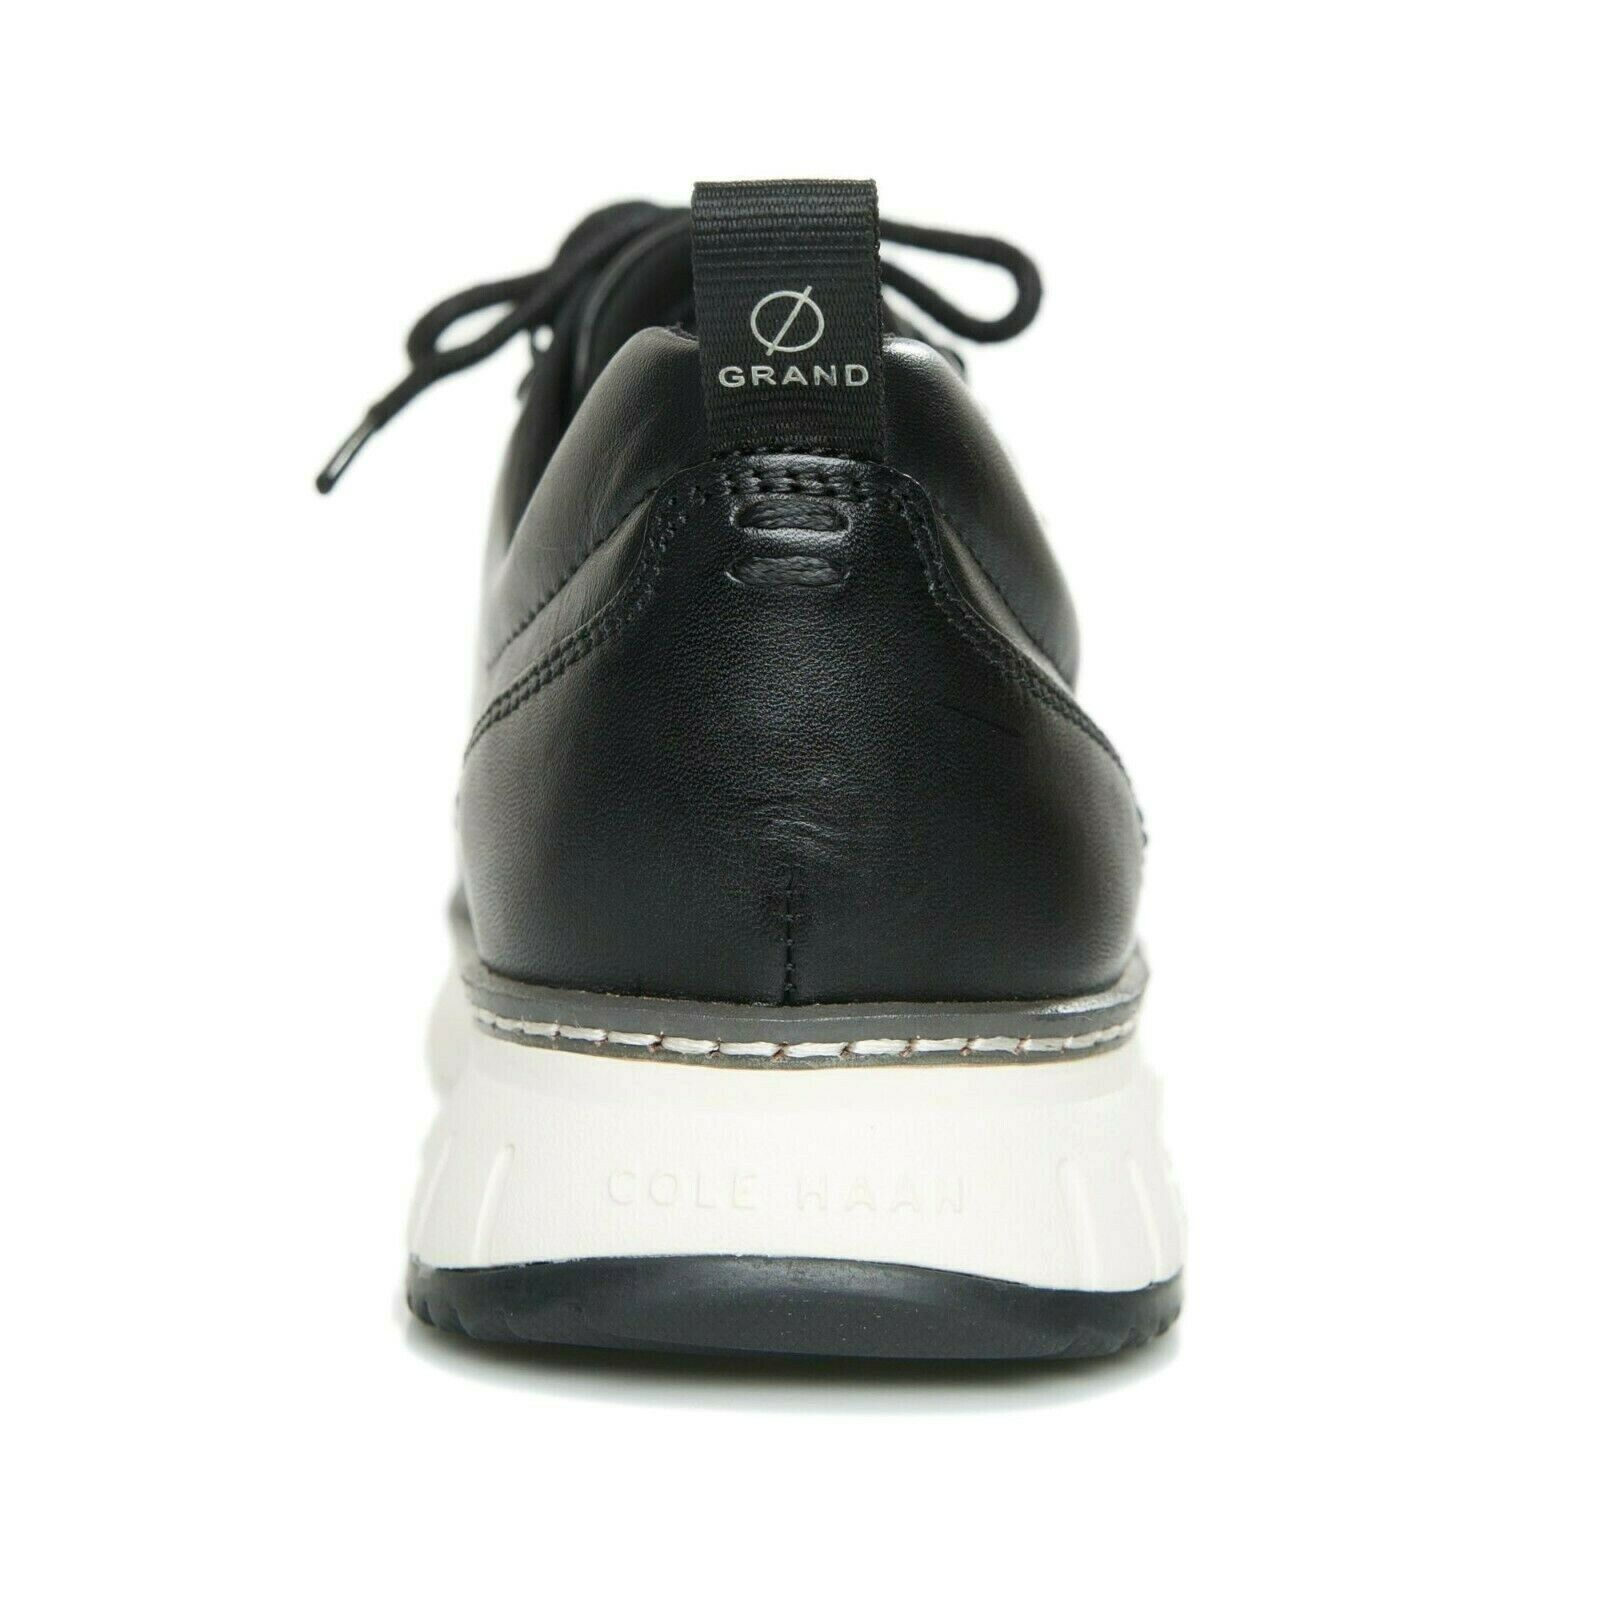 COLE HAAN ZEROGRAND RUGGED OXFORD LEATHER BLACK SIZE 10 NEW WITH BOX (C28466)